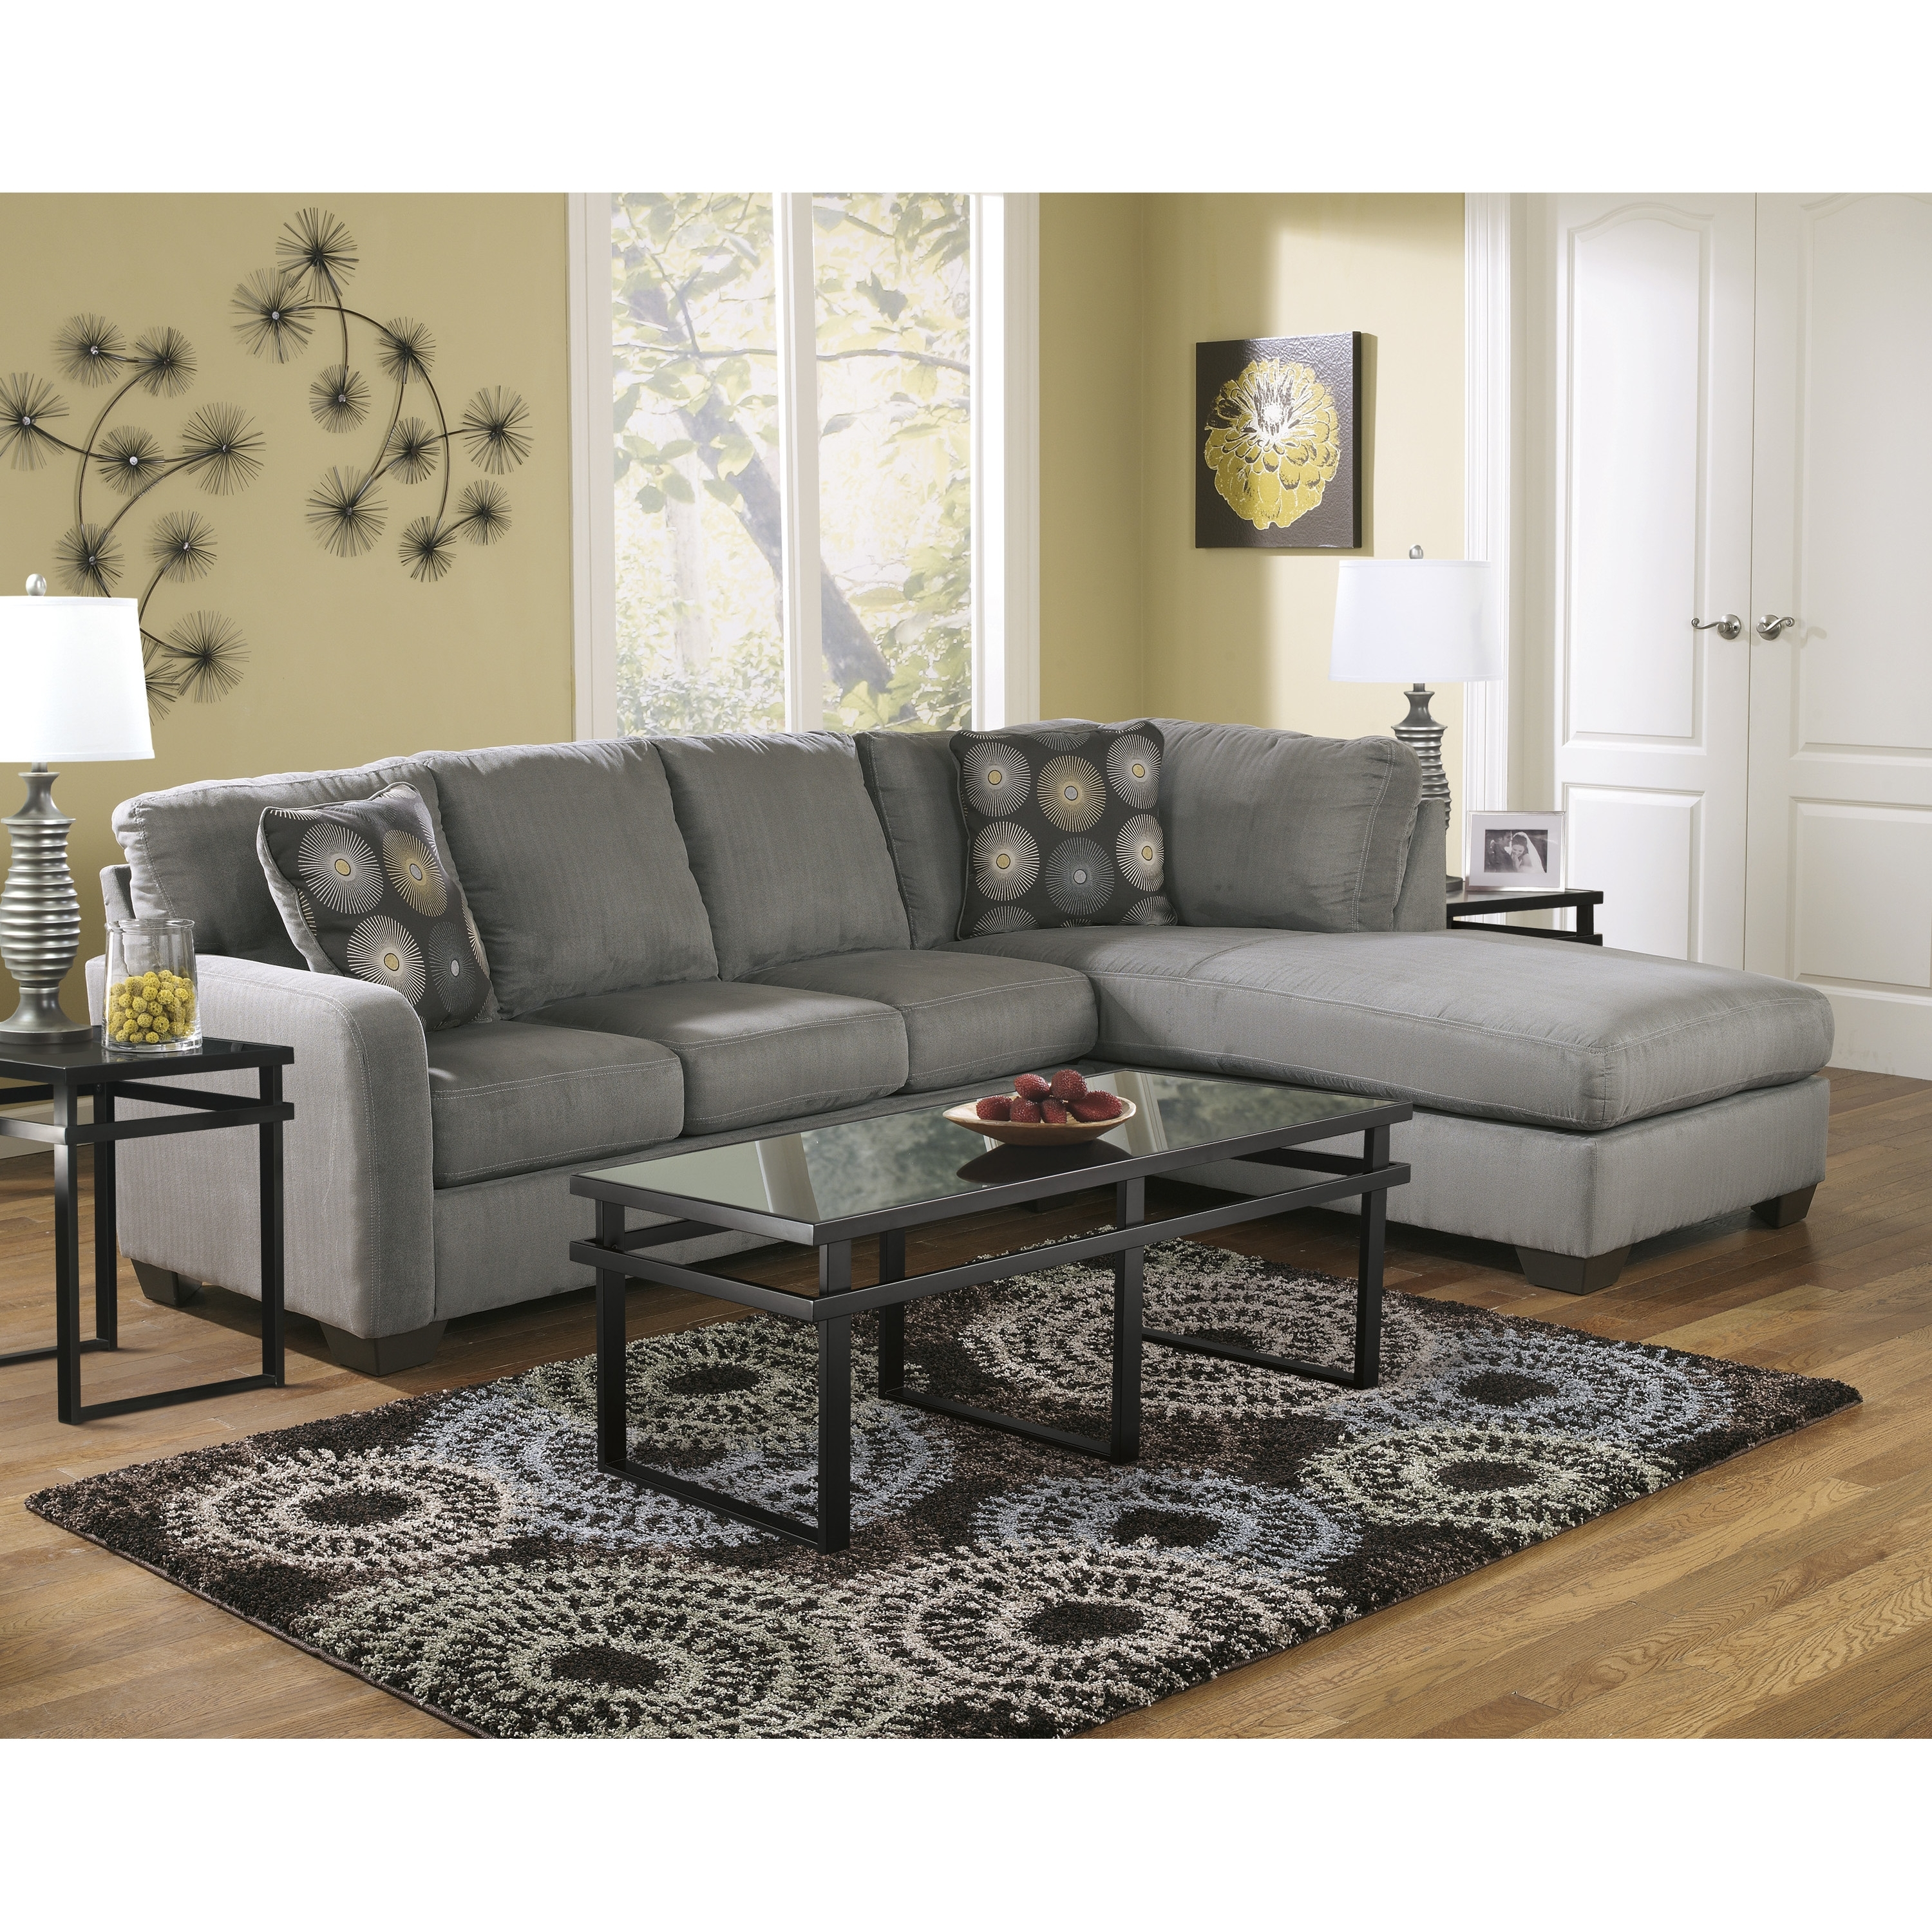 Most Popular Reclining Sectionals With Chaise For Tables For Couches Fresh In Great Furniture L Shaped Grey (View 15 of 15)